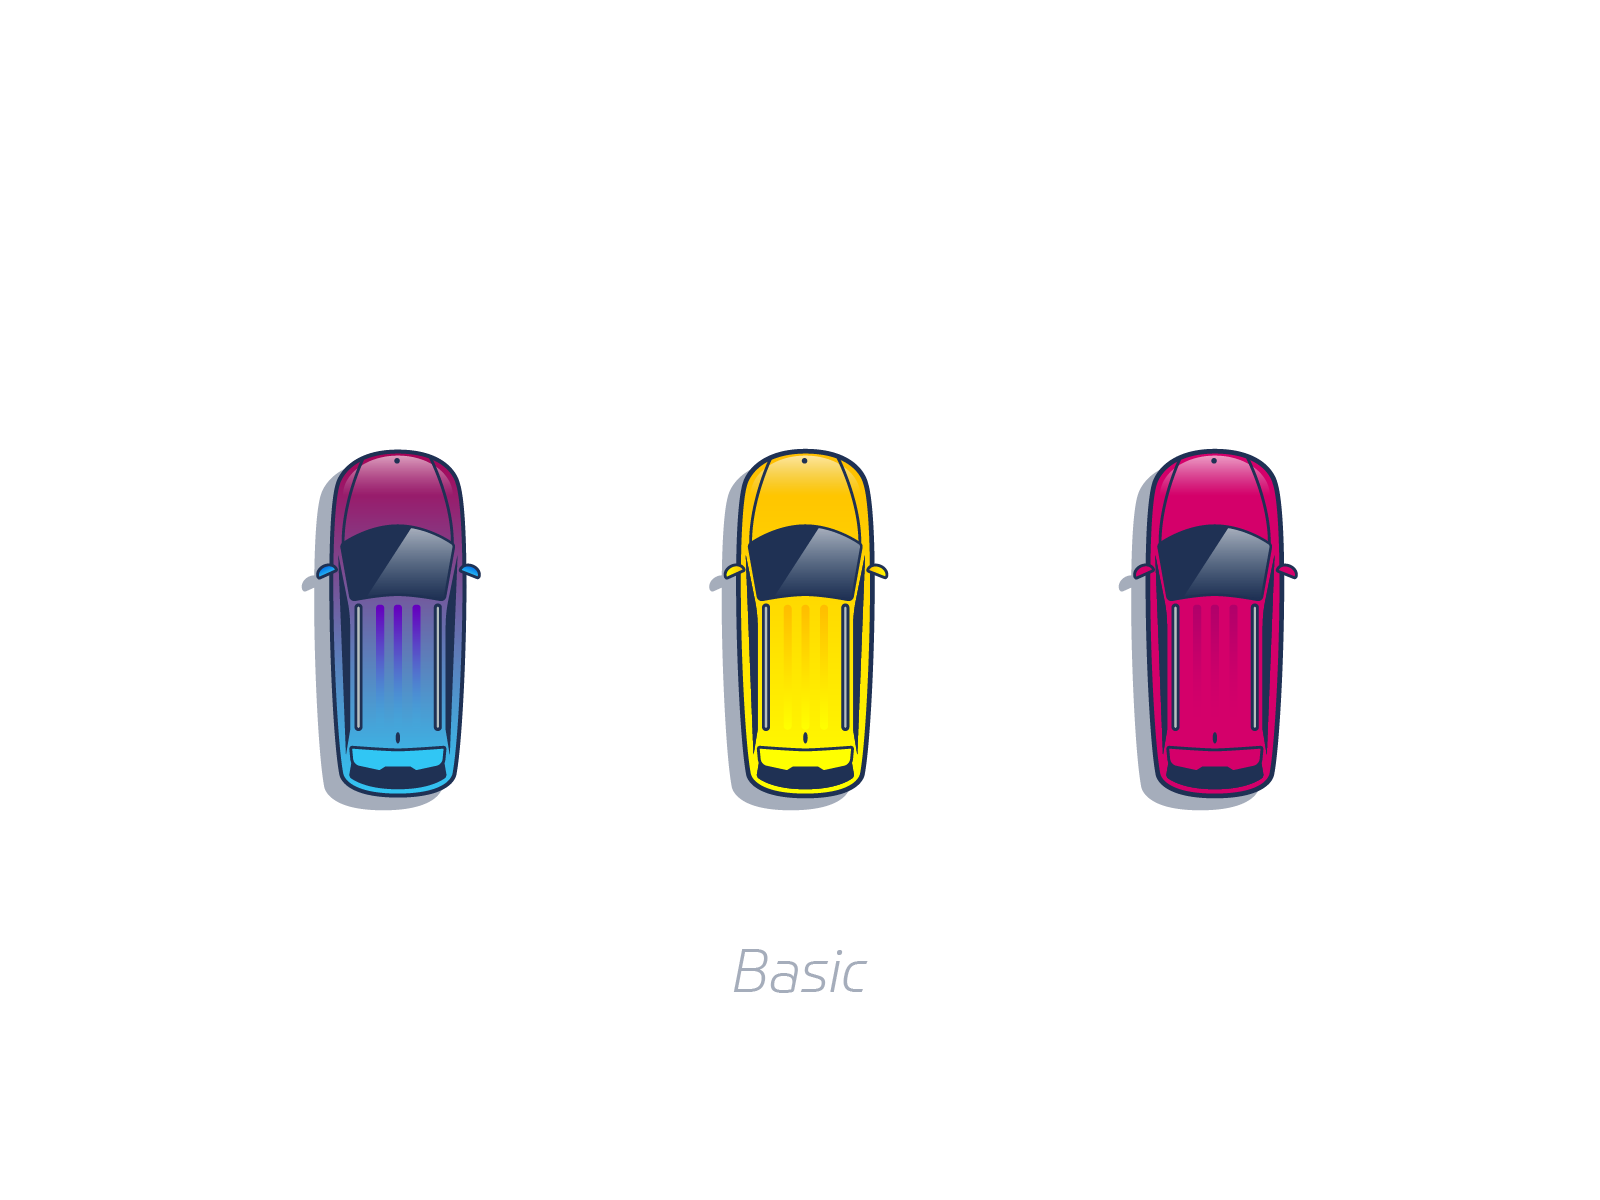 Basic cars game graphic design